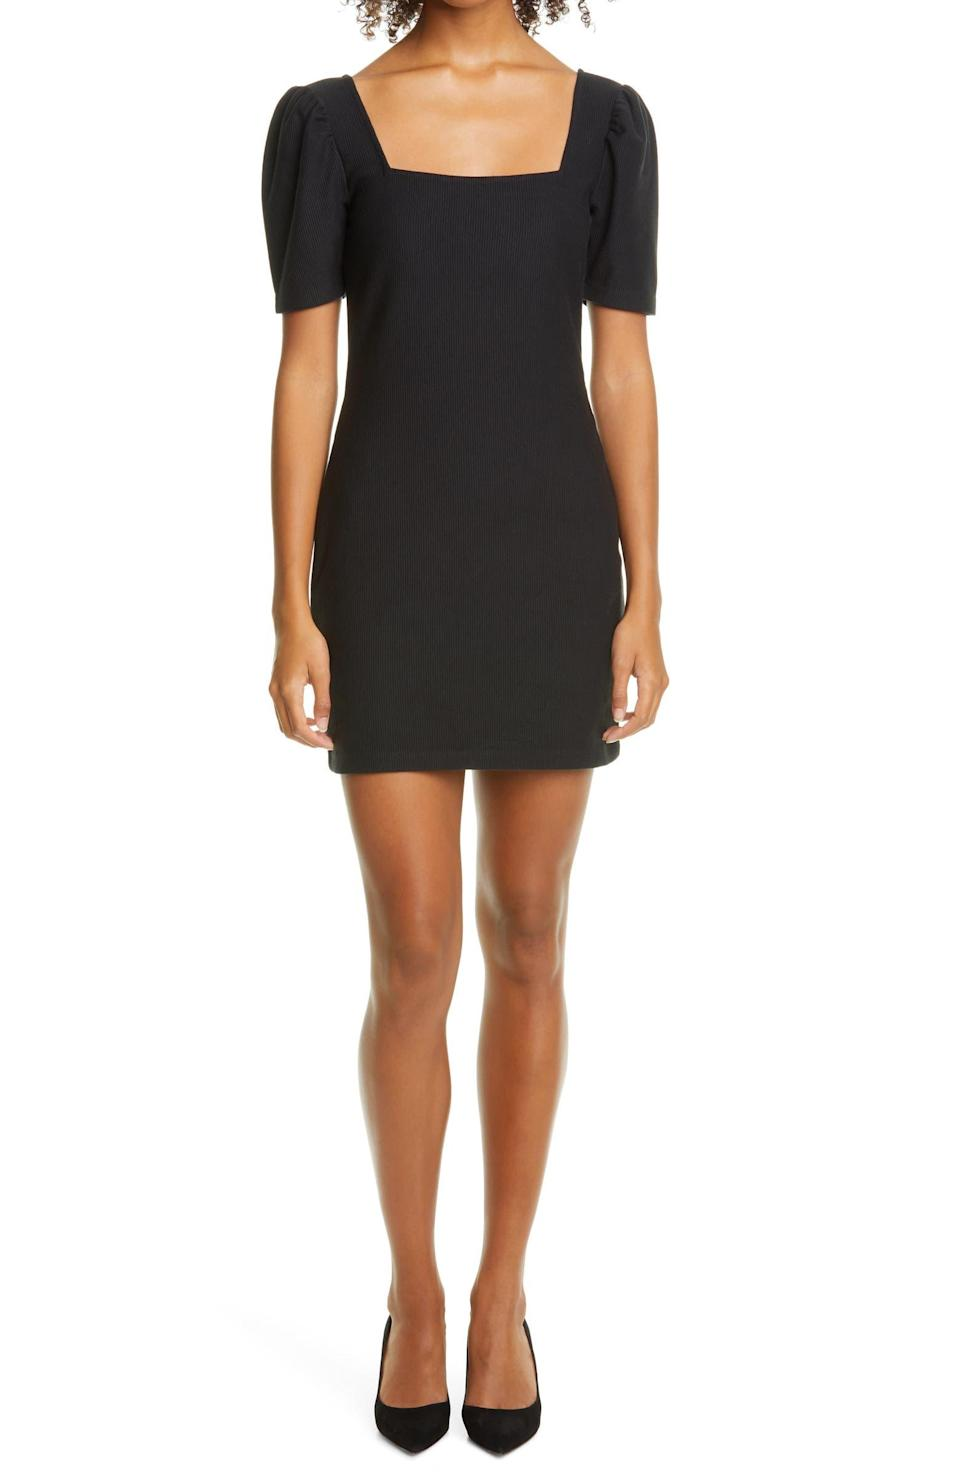 """<h2><a href=""""https://www.nordstrom.com/brands/club-monaco--18278"""" rel=""""nofollow noopener"""" target=""""_blank"""" data-ylk=""""slk:Up to 60% off Club Monaco"""" class=""""link rapid-noclick-resp"""">Up to 60% off Club Monaco</a></h2><br><br><strong>Club Monaco</strong> Square Neck Puff Sleeve Minidress, $, available at <a href=""""https://go.skimresources.com/?id=30283X879131&url=https%3A%2F%2Fwww.nordstrom.com%2Fs%2Fclub-monaco-square-neck-puff-sleeve-minidress%2F5645239"""" rel=""""nofollow noopener"""" target=""""_blank"""" data-ylk=""""slk:Nordstrom"""" class=""""link rapid-noclick-resp"""">Nordstrom</a>"""